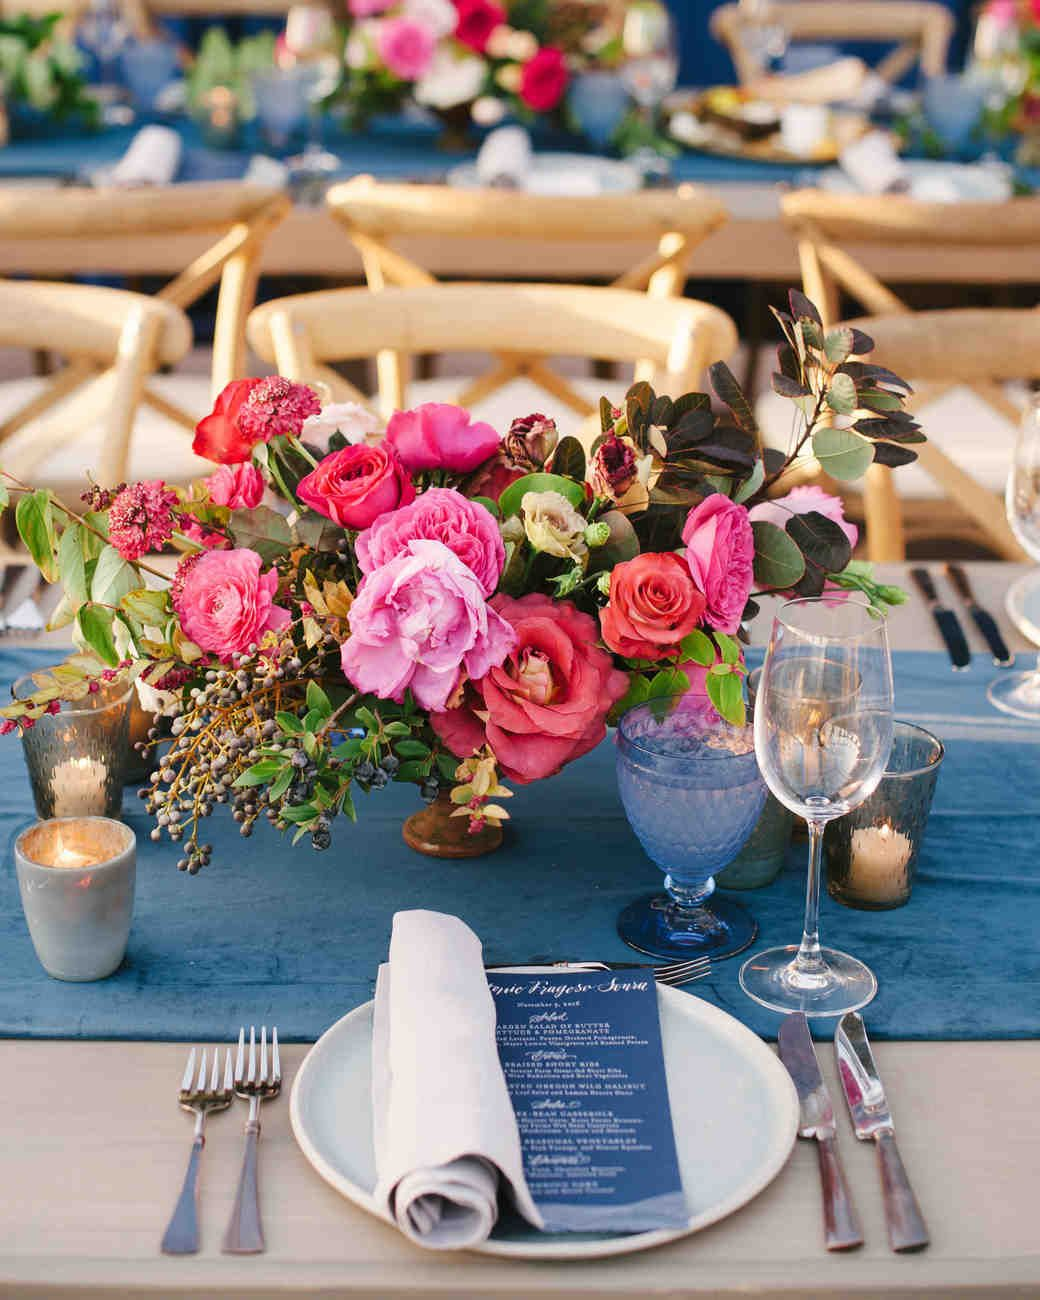 Jewel Tone Wedding Flowers: 25 Jewel-Toned Wedding Centerpieces Sure To Wow Your